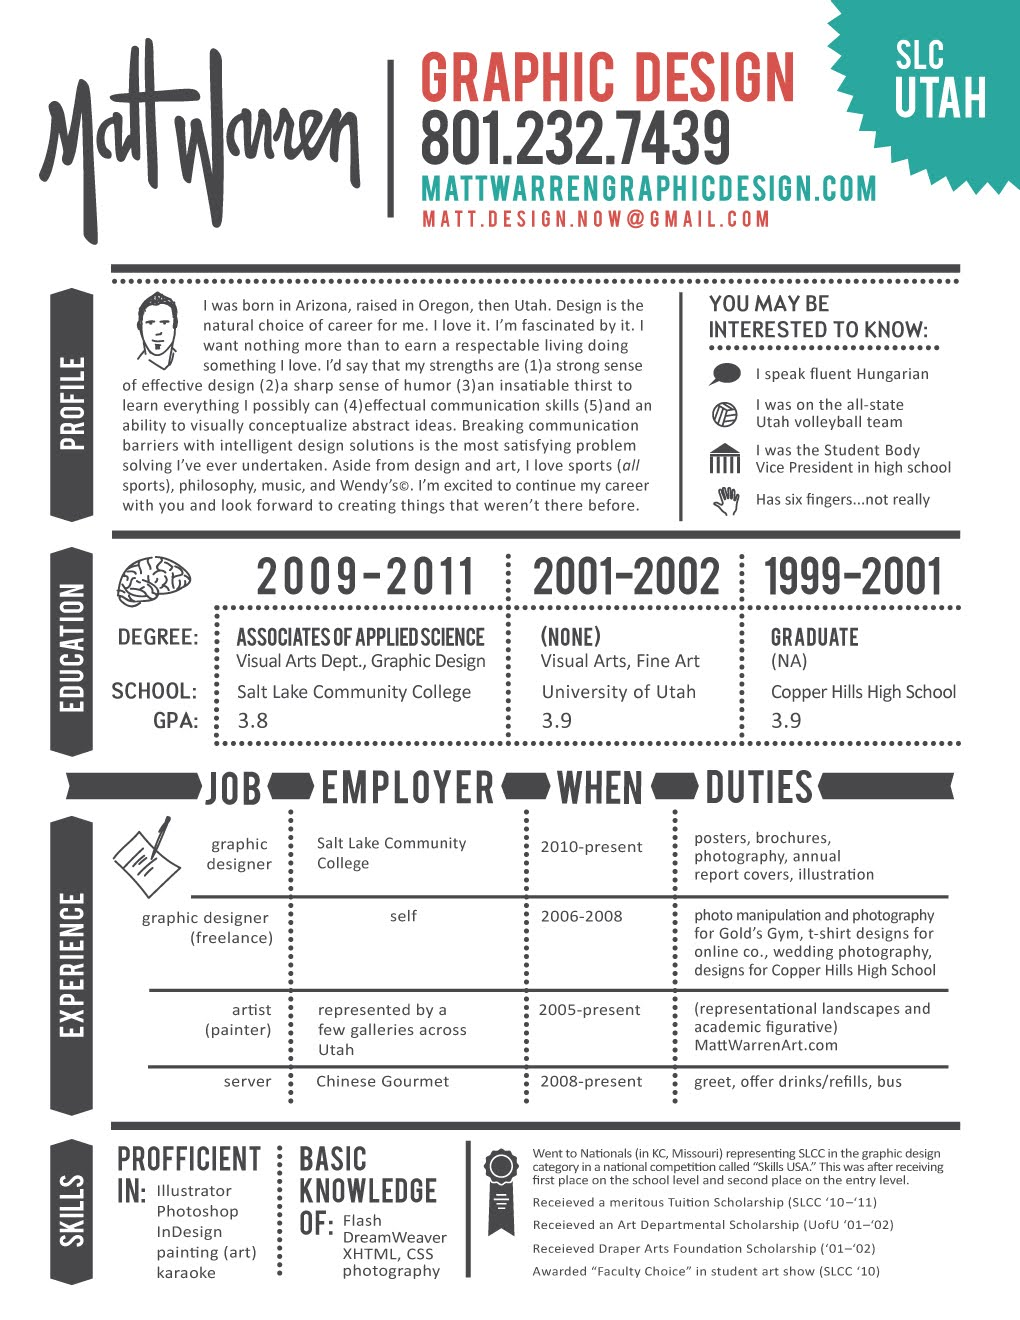 Opposenewapstandardsus  Wonderful  Images About Hire Me On Pinterest  Graphic Designer Resume  With Inspiring  Images About Hire Me On Pinterest  Graphic Designer Resume Resume Design And Resume With Endearing Regional Sales Manager Resume Also Restaurant Owner Resume In Addition How To Do A Resume Free And Management Resume Skills As Well As How To Write A Good Resume Objective Additionally Payroll Manager Resume From Pinterestcom With Opposenewapstandardsus  Inspiring  Images About Hire Me On Pinterest  Graphic Designer Resume  With Endearing  Images About Hire Me On Pinterest  Graphic Designer Resume Resume Design And Resume And Wonderful Regional Sales Manager Resume Also Restaurant Owner Resume In Addition How To Do A Resume Free From Pinterestcom